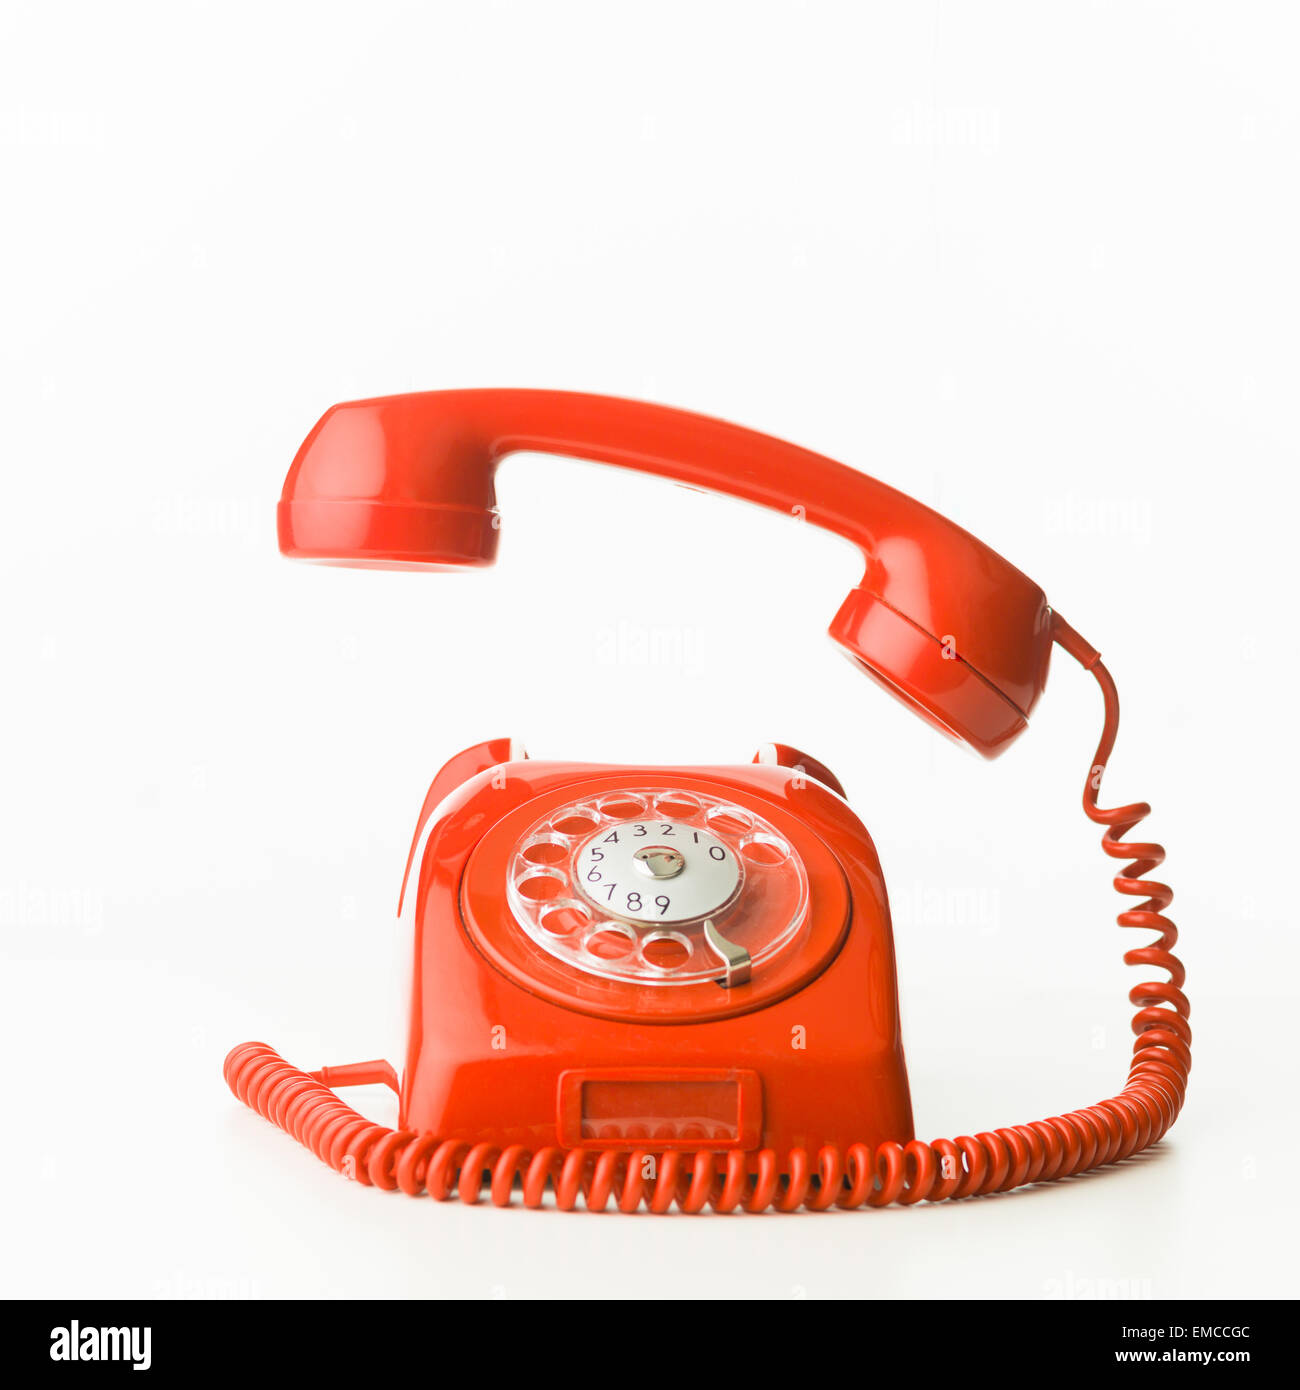 Closeup Of Red Vintage Phone Ringing, Isolated On White Background Nice Ideas